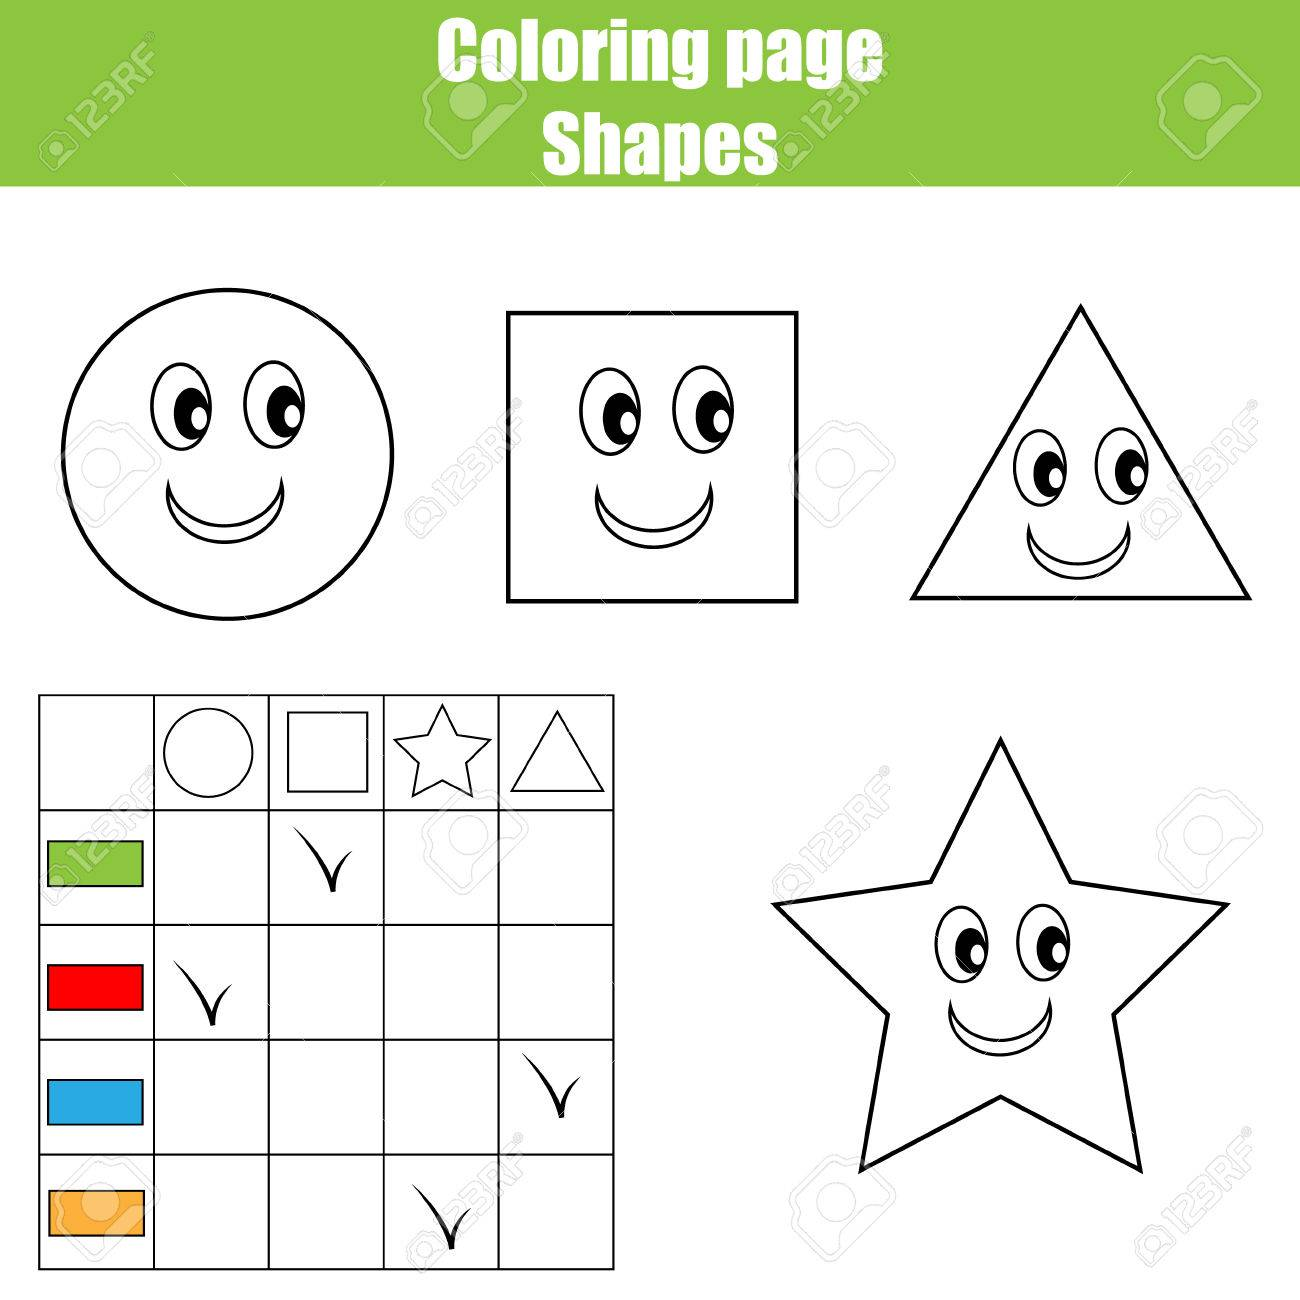 graphic relating to Toddler Learning Activities Printable Free called Coloring web site teach sheet. Insightful youngsters video game, young children..